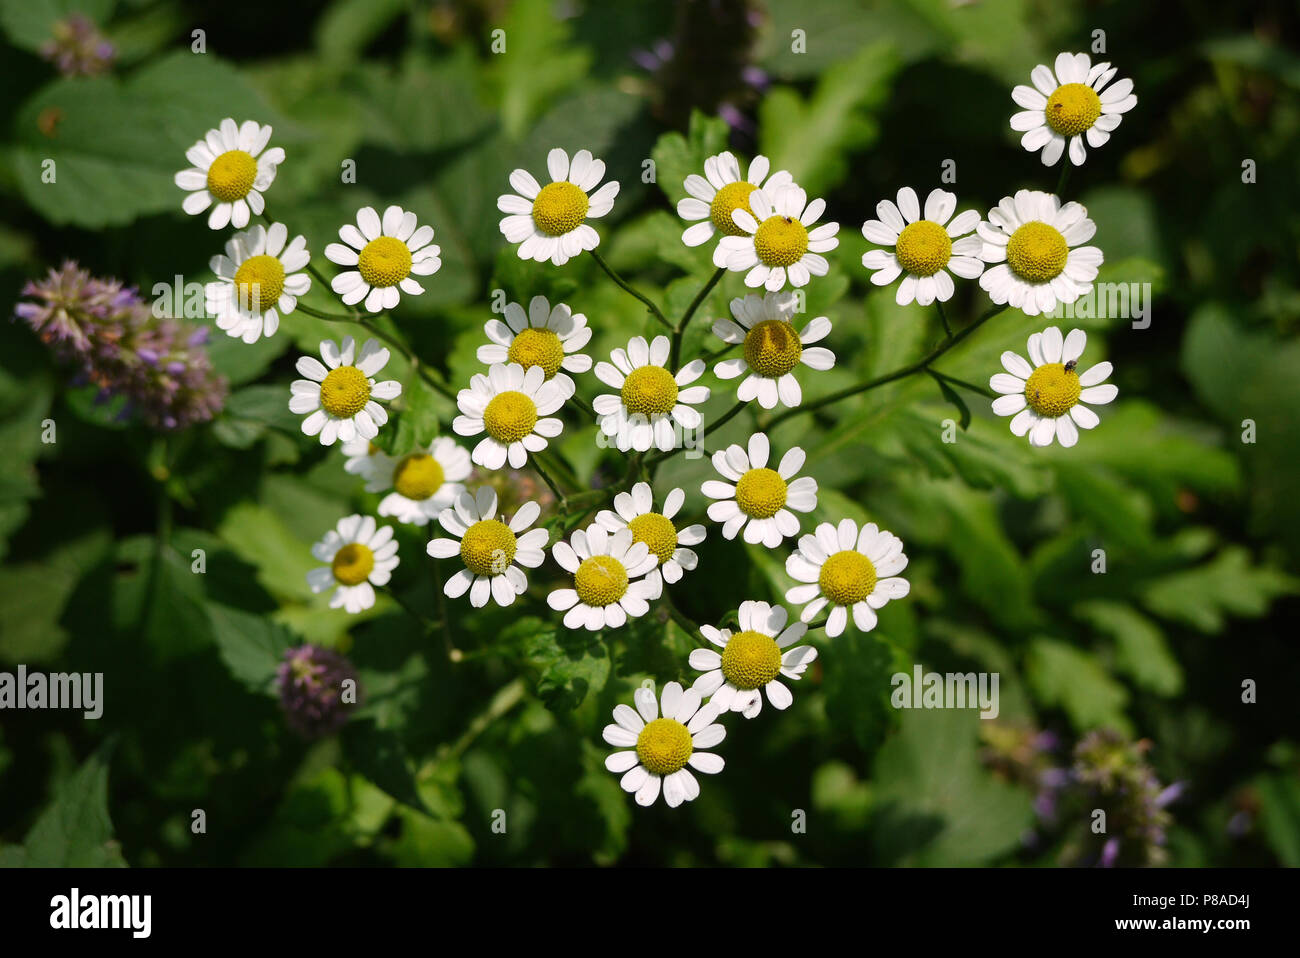 Branch With A Lot Of Small Daisy Flowers With White Petals And A